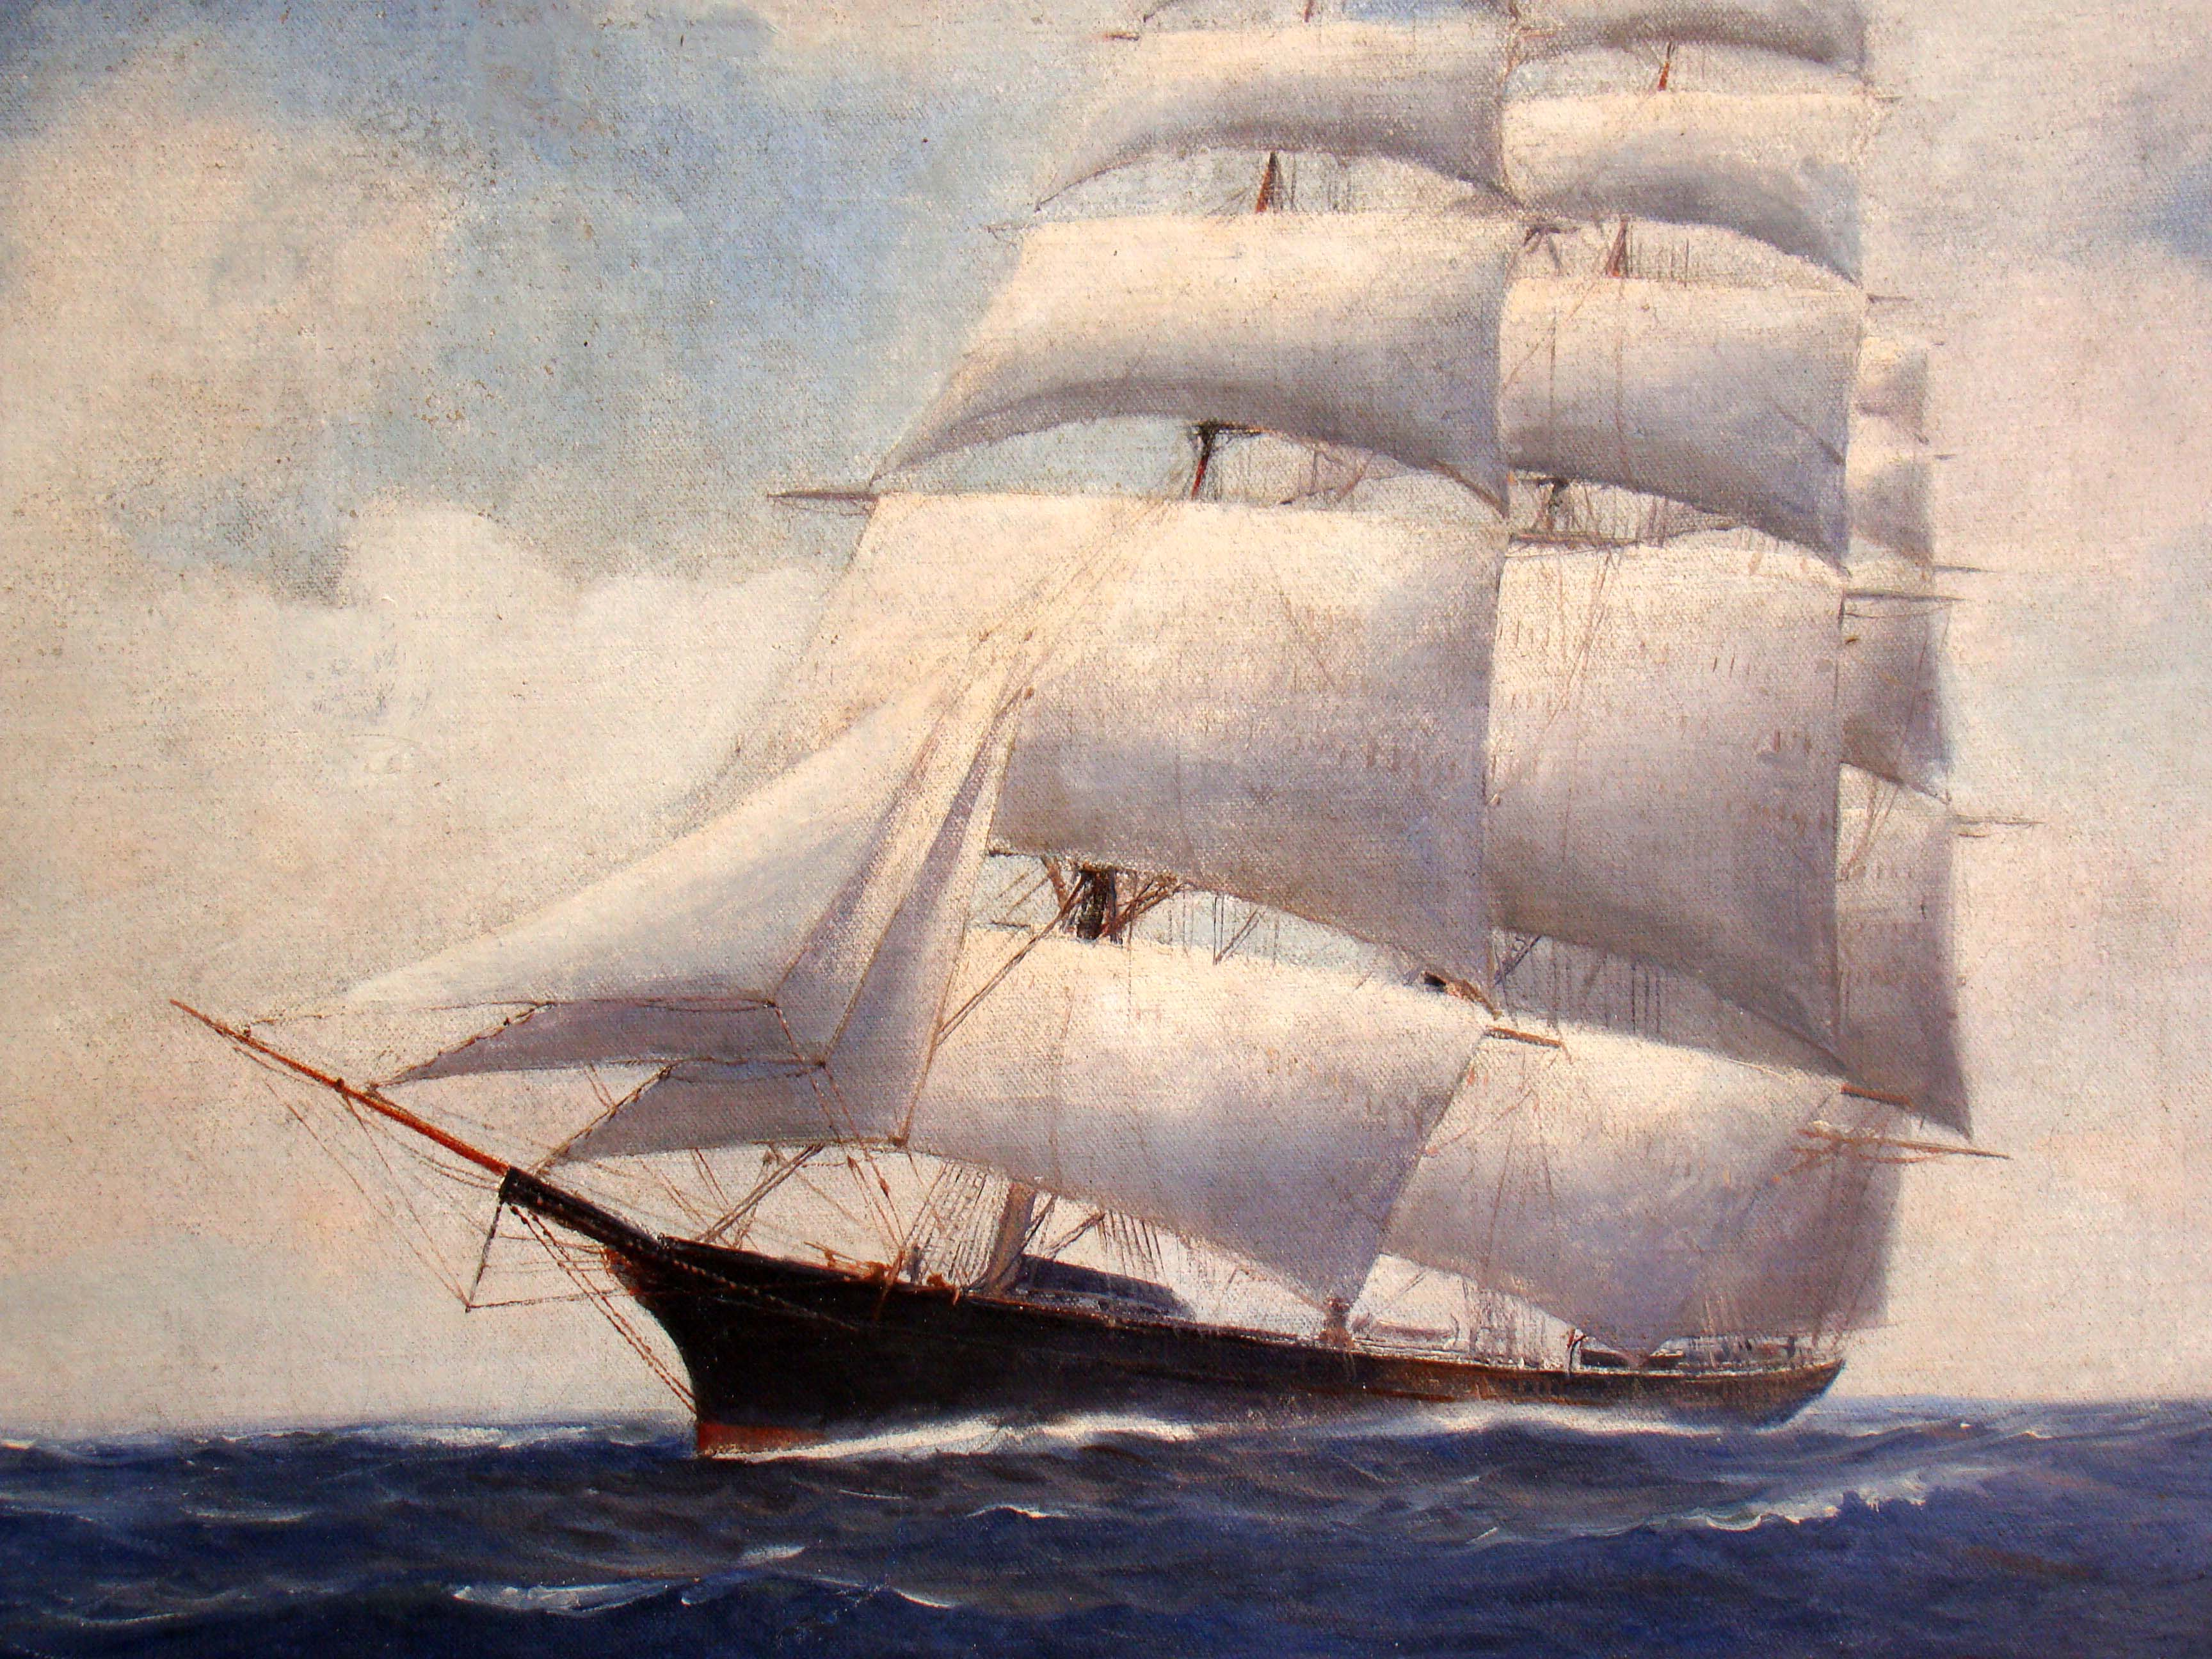 click to view larger image of A vintage oil painting of the famous clipper ship Westward Ho by Vivian Porter circa 1920